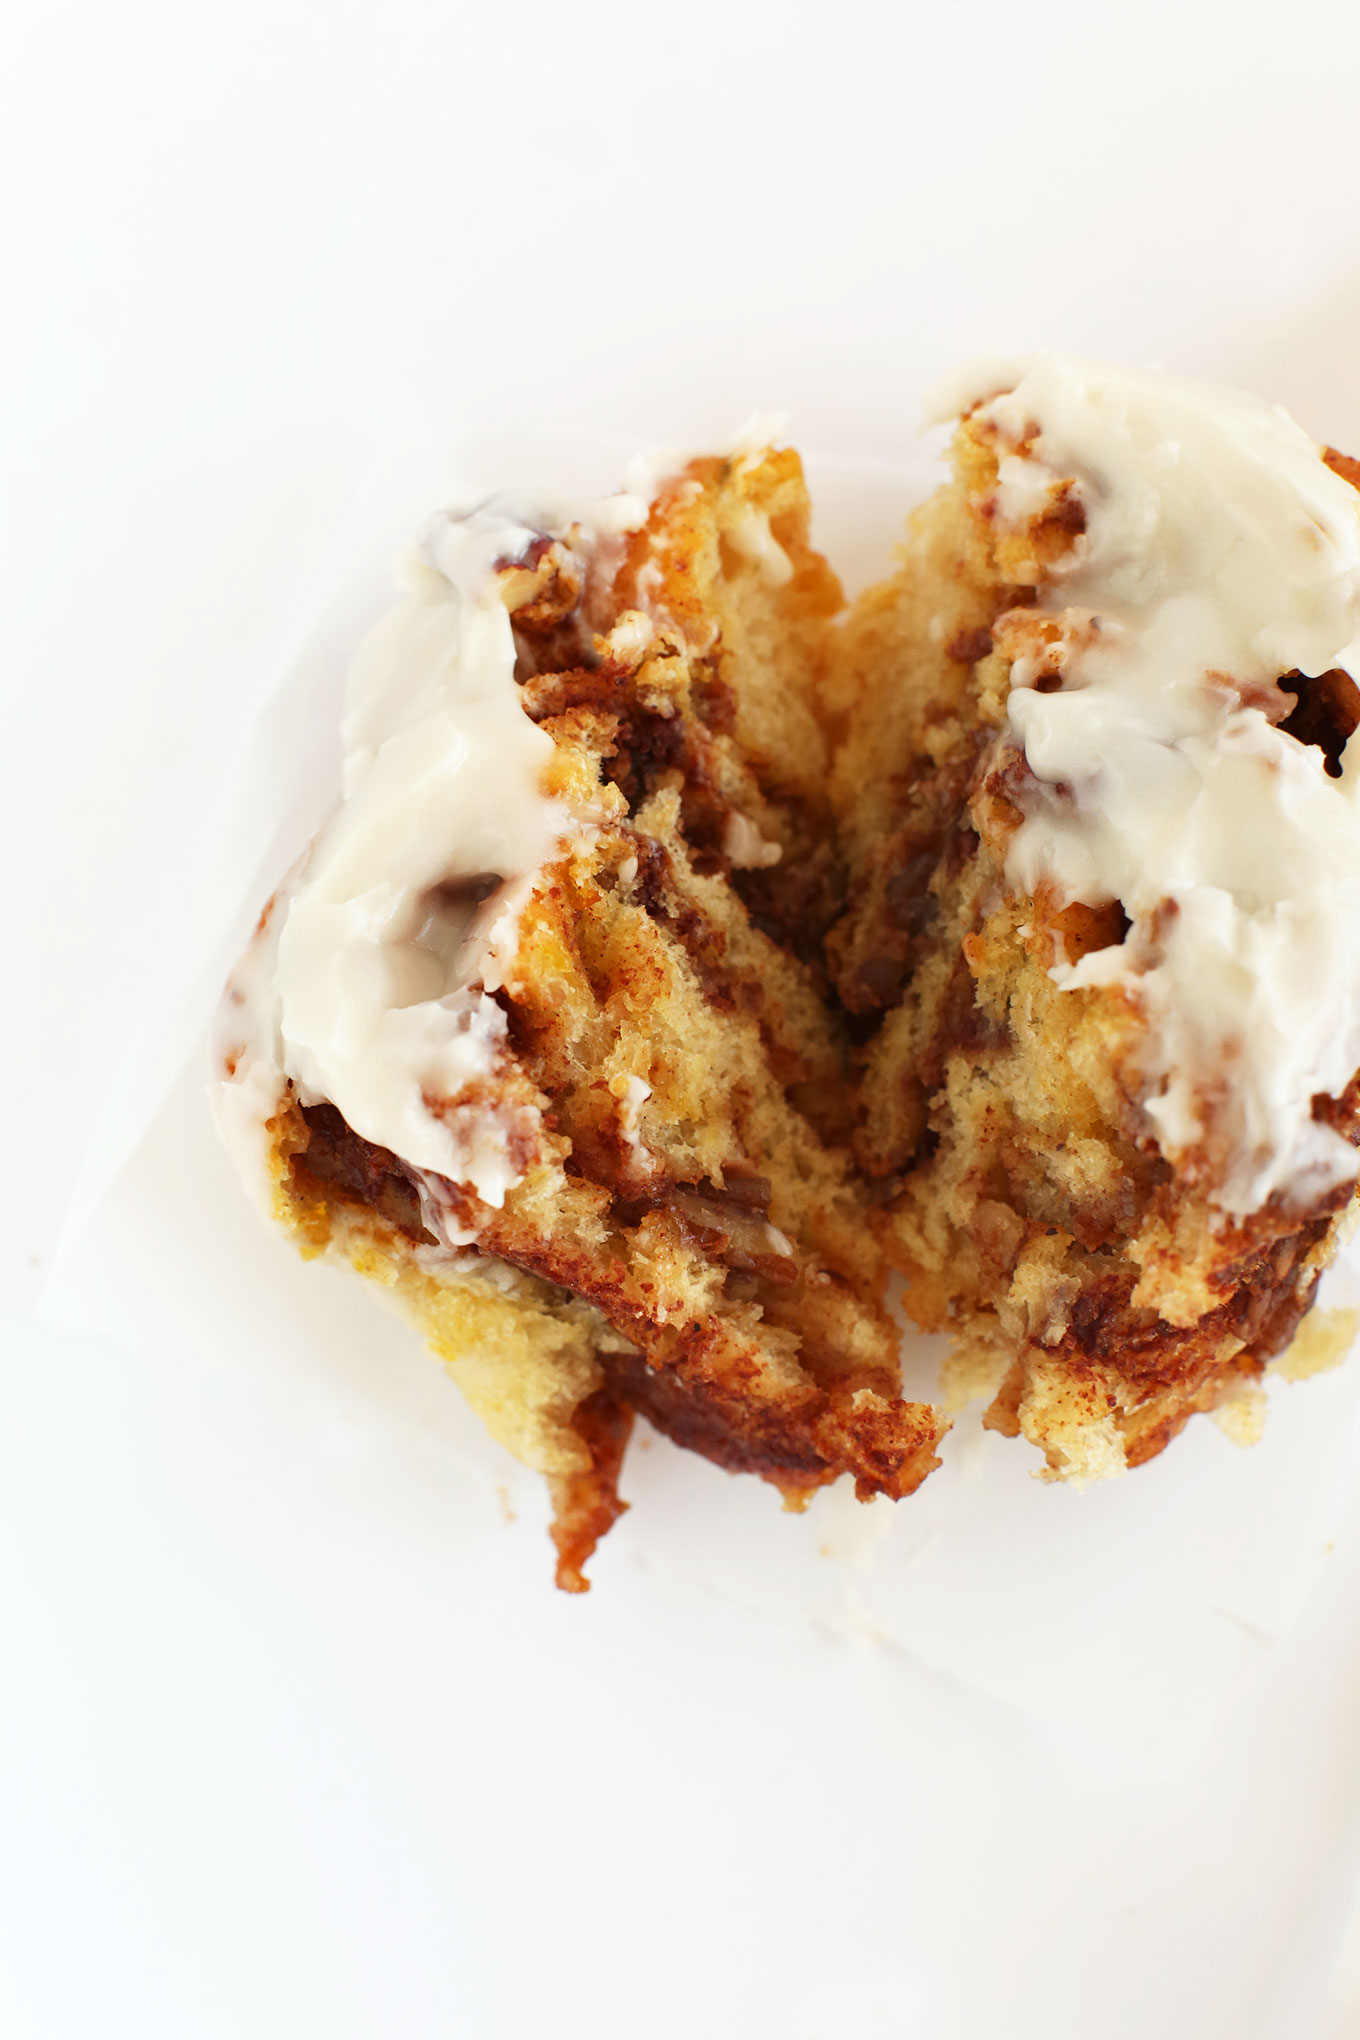 Cut open gooey Pumpkin Cinnamon Roll with icing